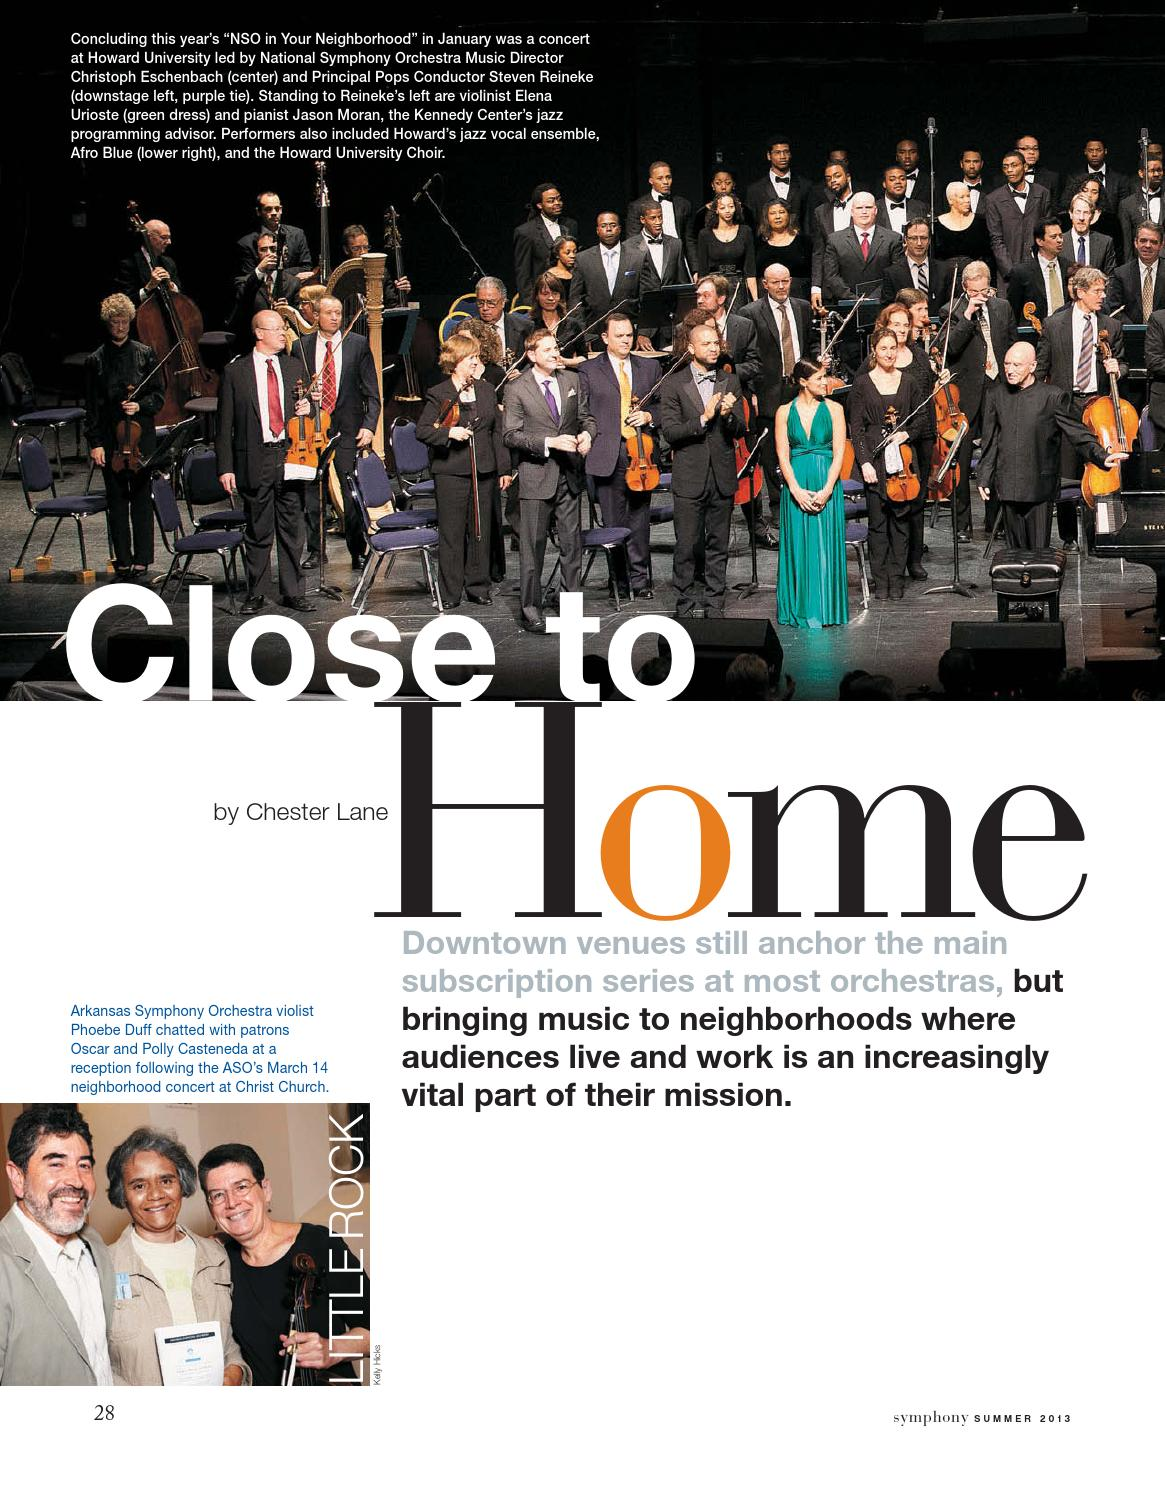 Symphonyonline summer 2013 by League of American Orchestras